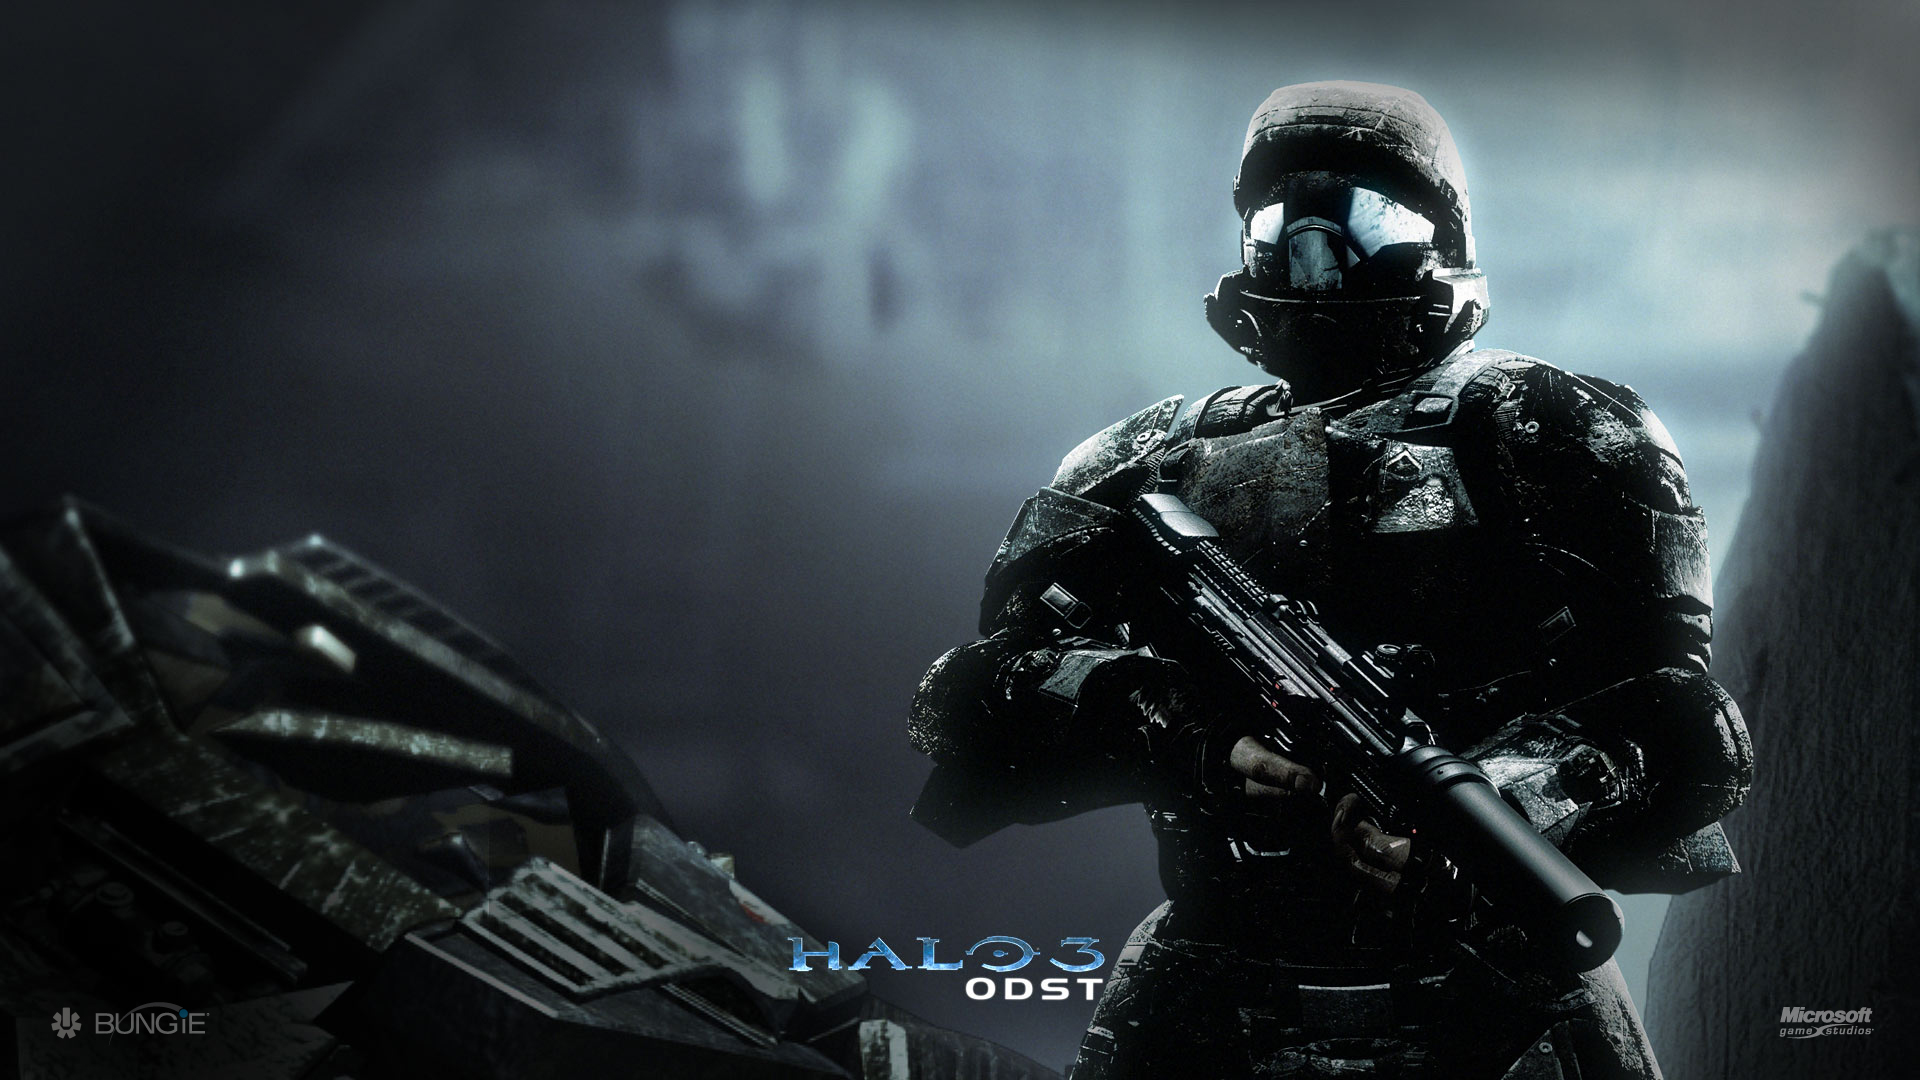 Welcome to the Halo 3 ODST wallpapers page 1920x1080